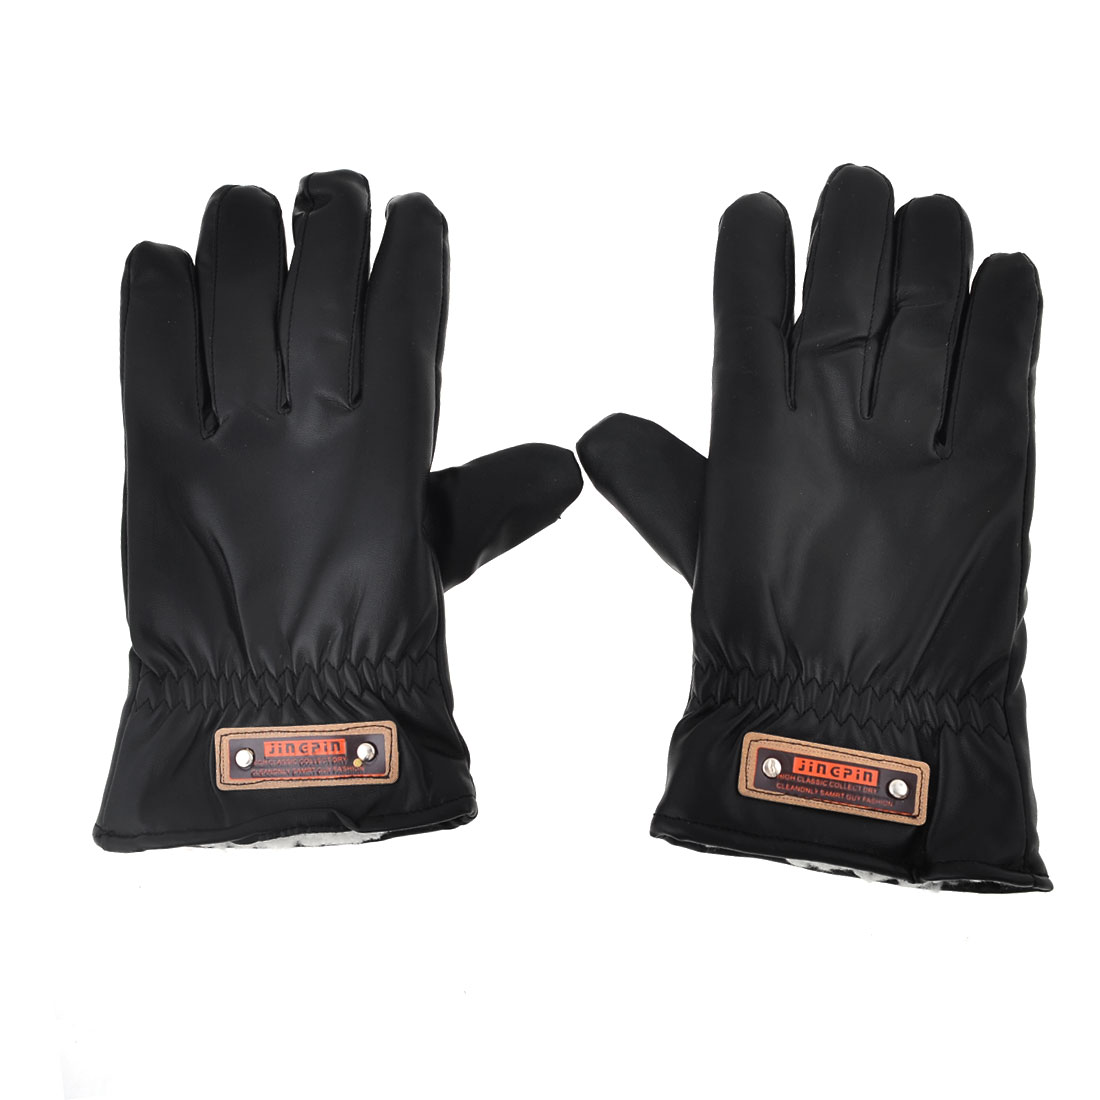 Ladies Black Faux Leather Hand Protective Winter Outdoor Gloves Pair